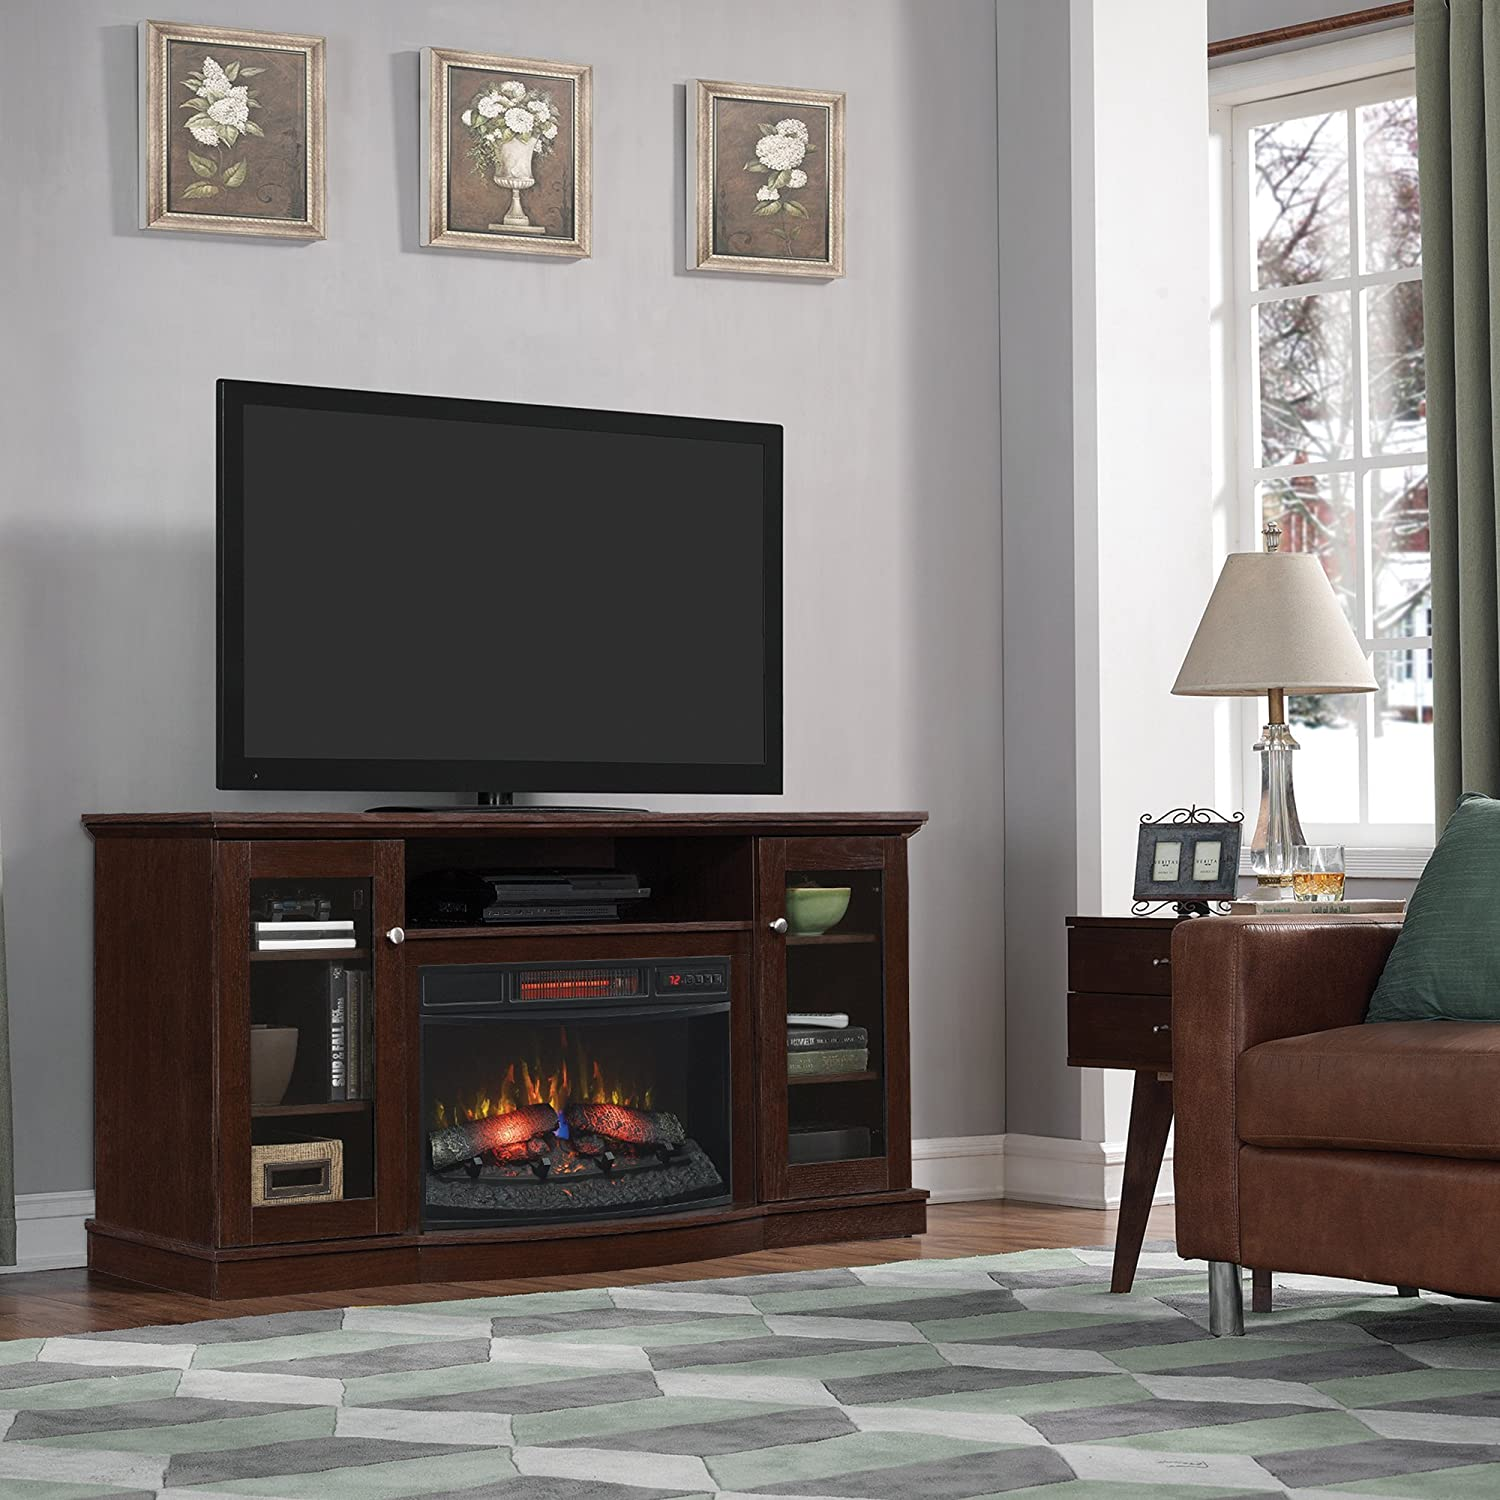 Buy ChimneyFree Walker Infrared Electric Fireplace Entertainment Center in Espresso: Television Stands & Entertainment Centers - Amazon.com ? FREE DELIVERY possible on eligible purchases